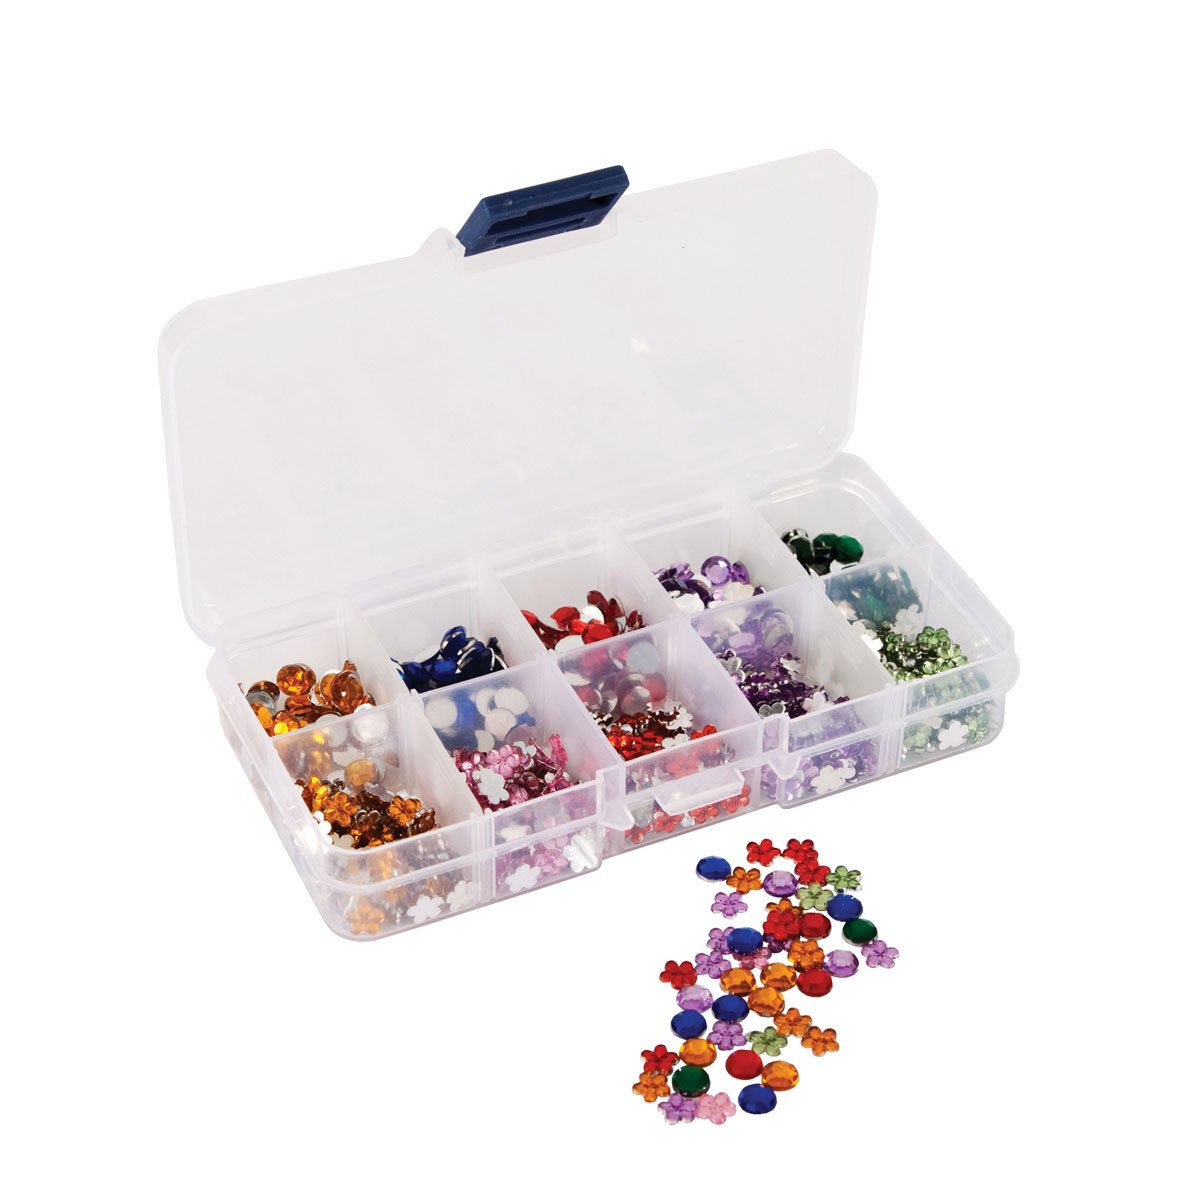 Papermania 750-Piece Mini Floral and Stone Gems with Organiser, Multi-Colour Docrafts PMA351003